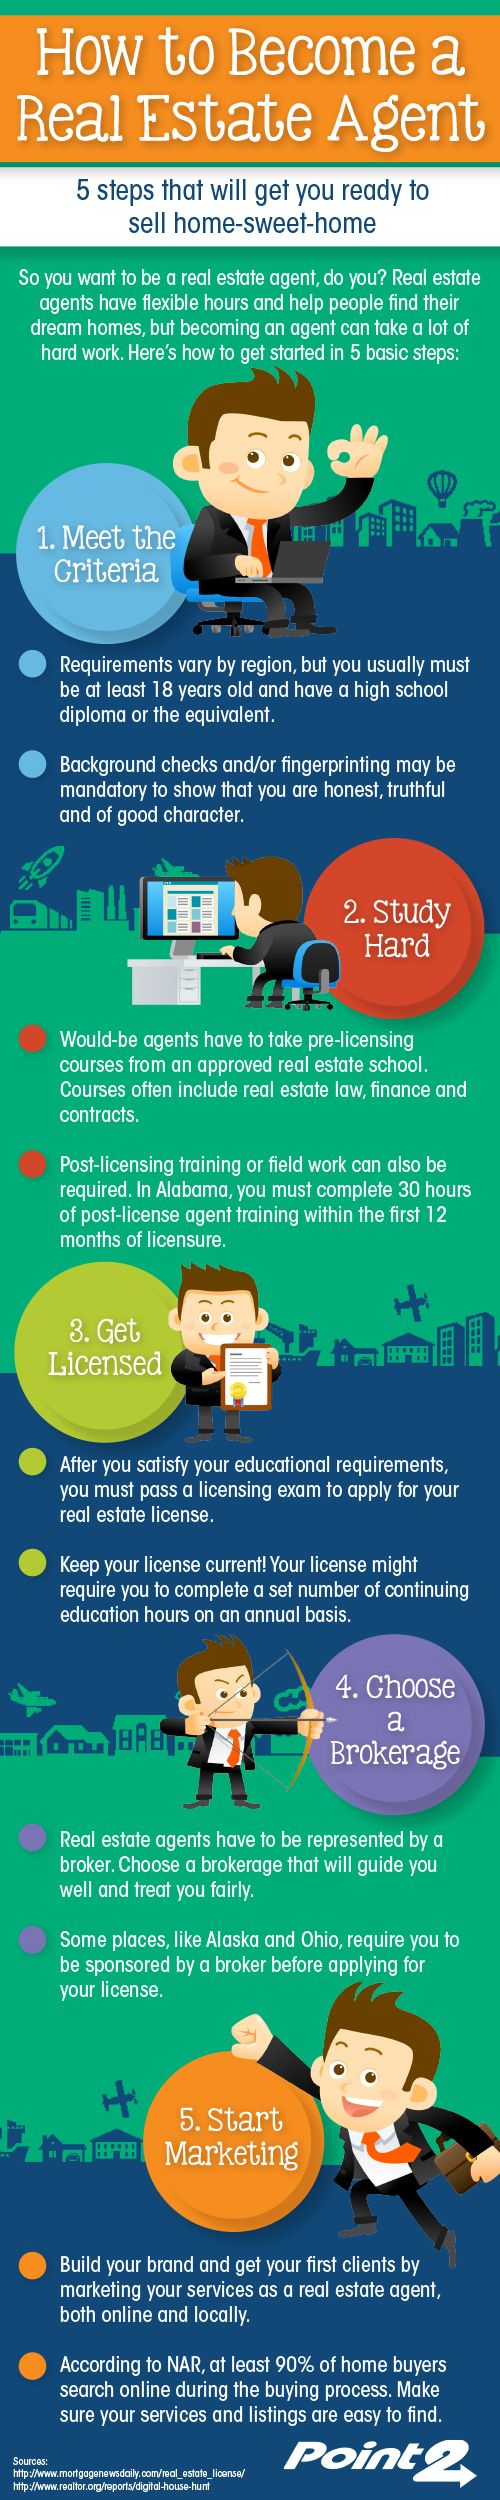 How to Become a Real Estate Agent in 5 Basic Steps (click through to read the full post!)